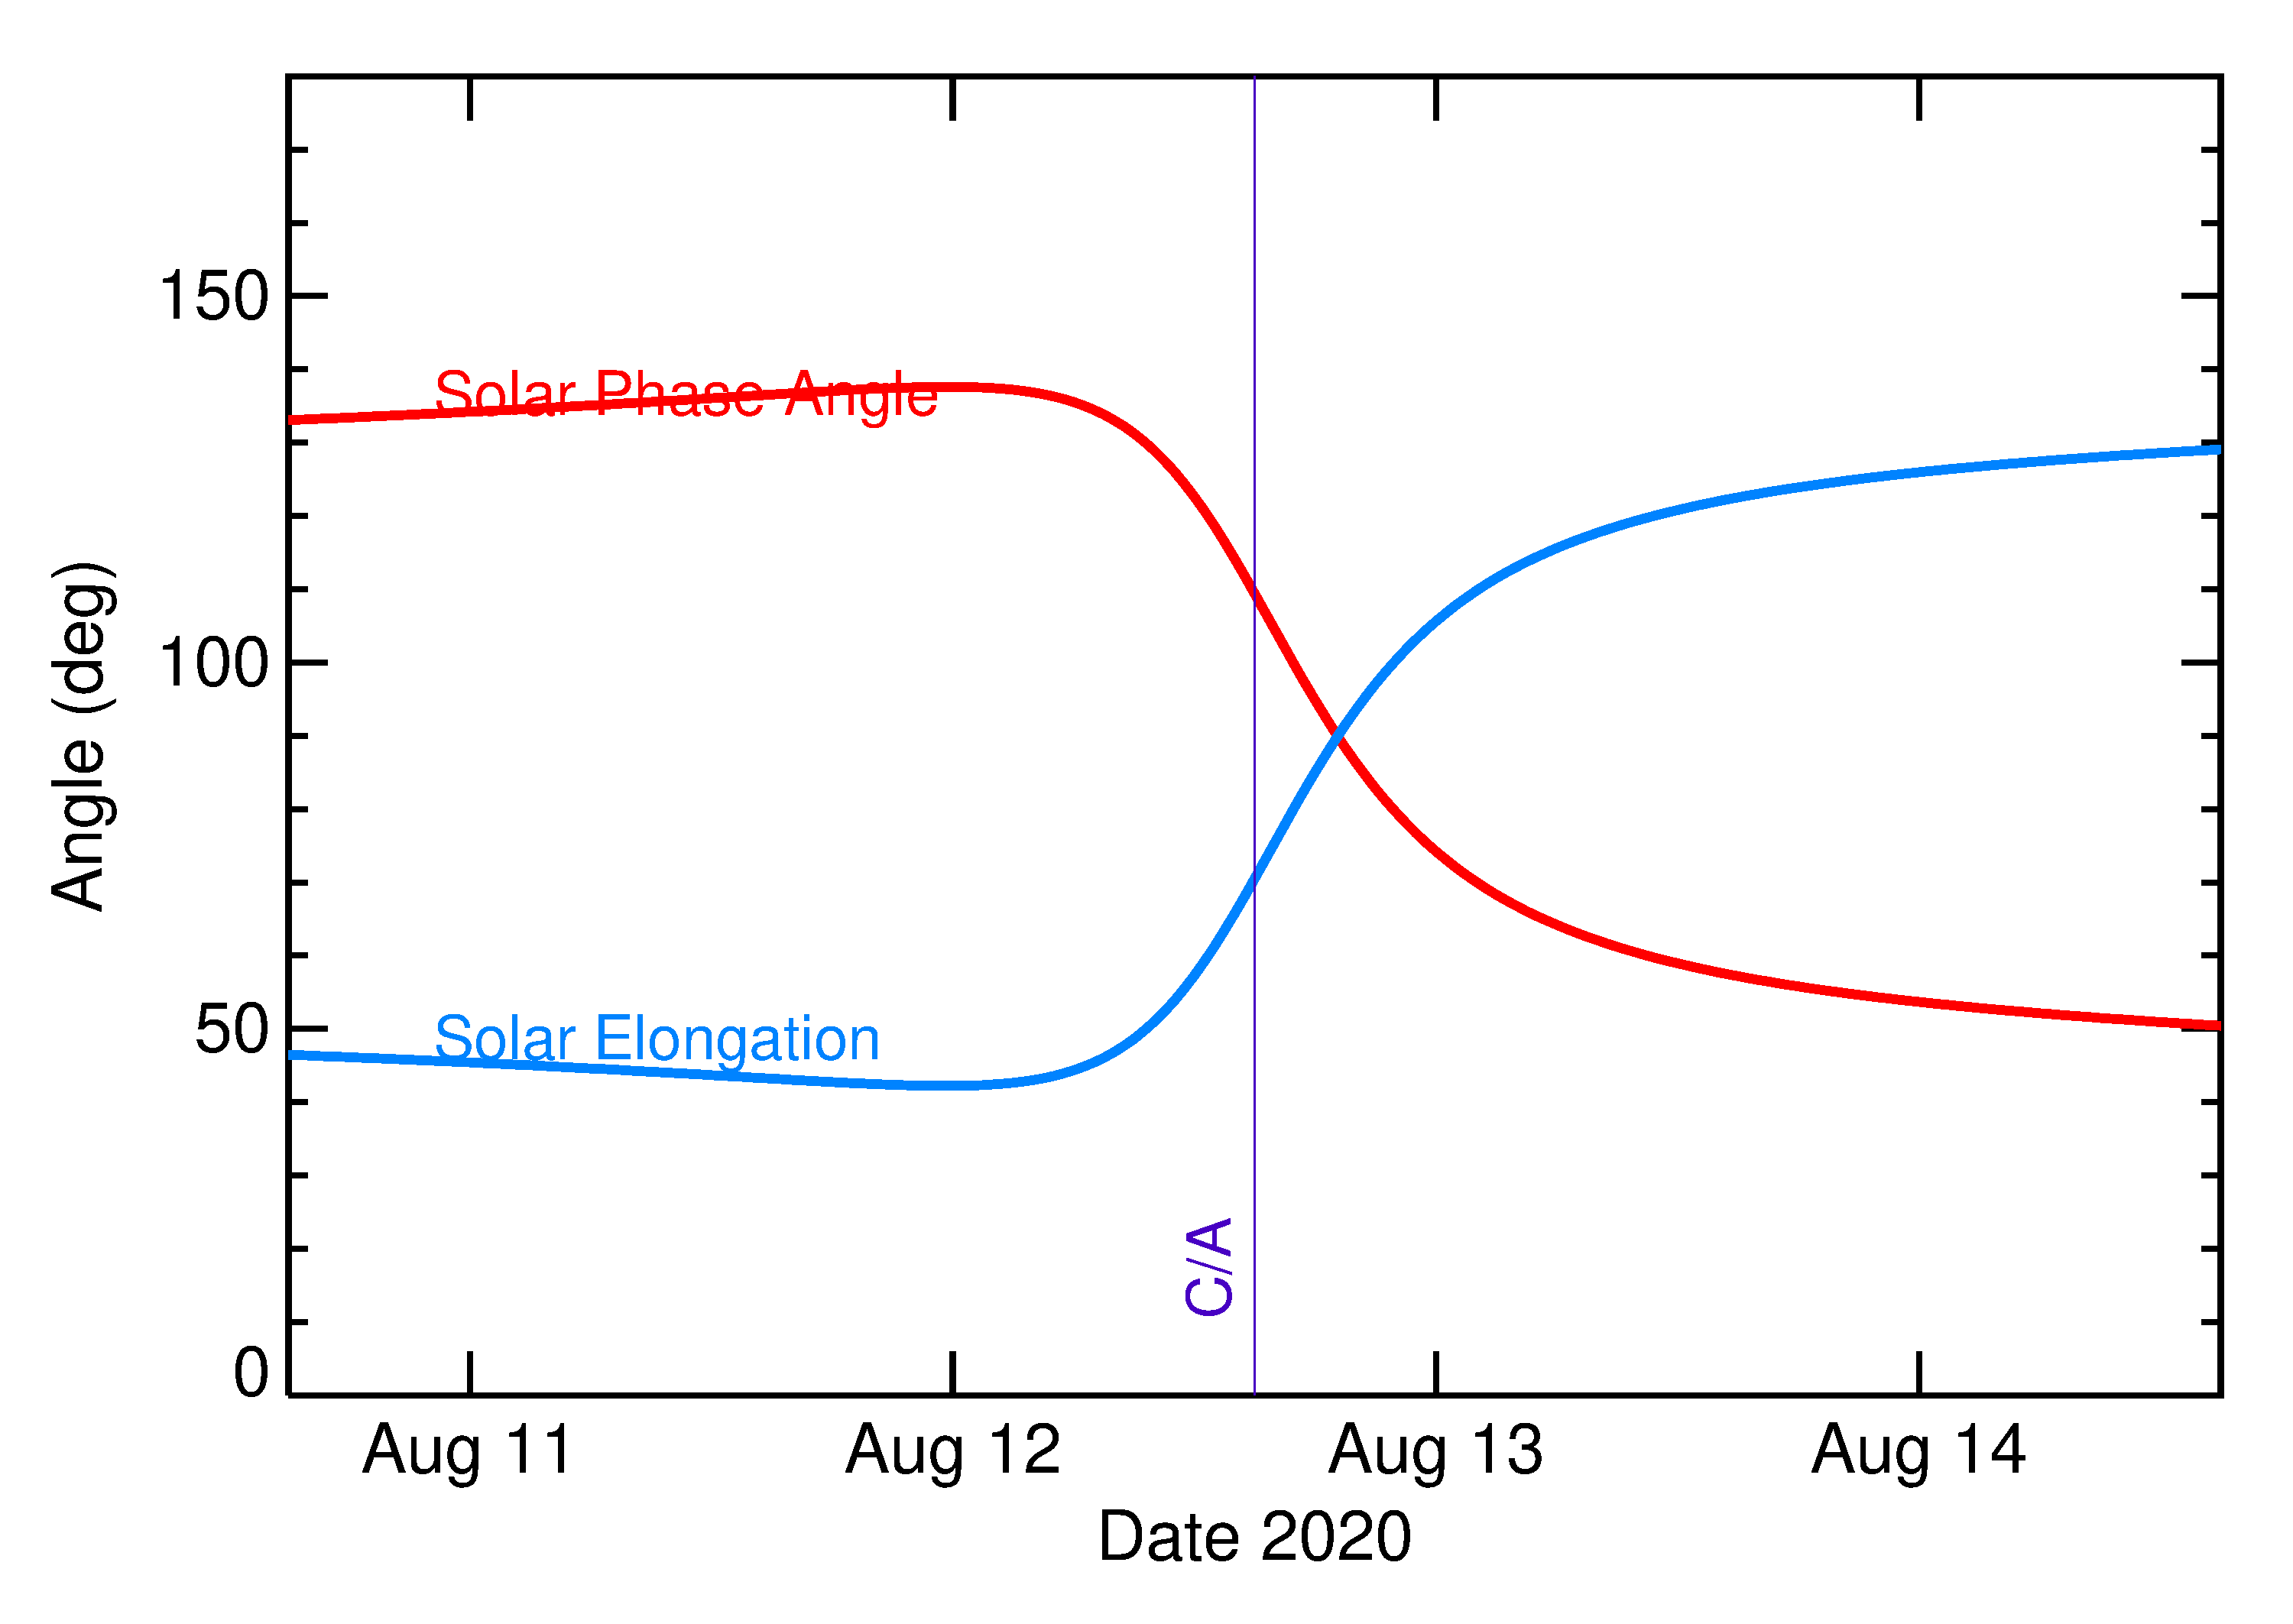 Solar Elongation and Solar Phase Angle of 2020 QJ5 in the days around closest approach